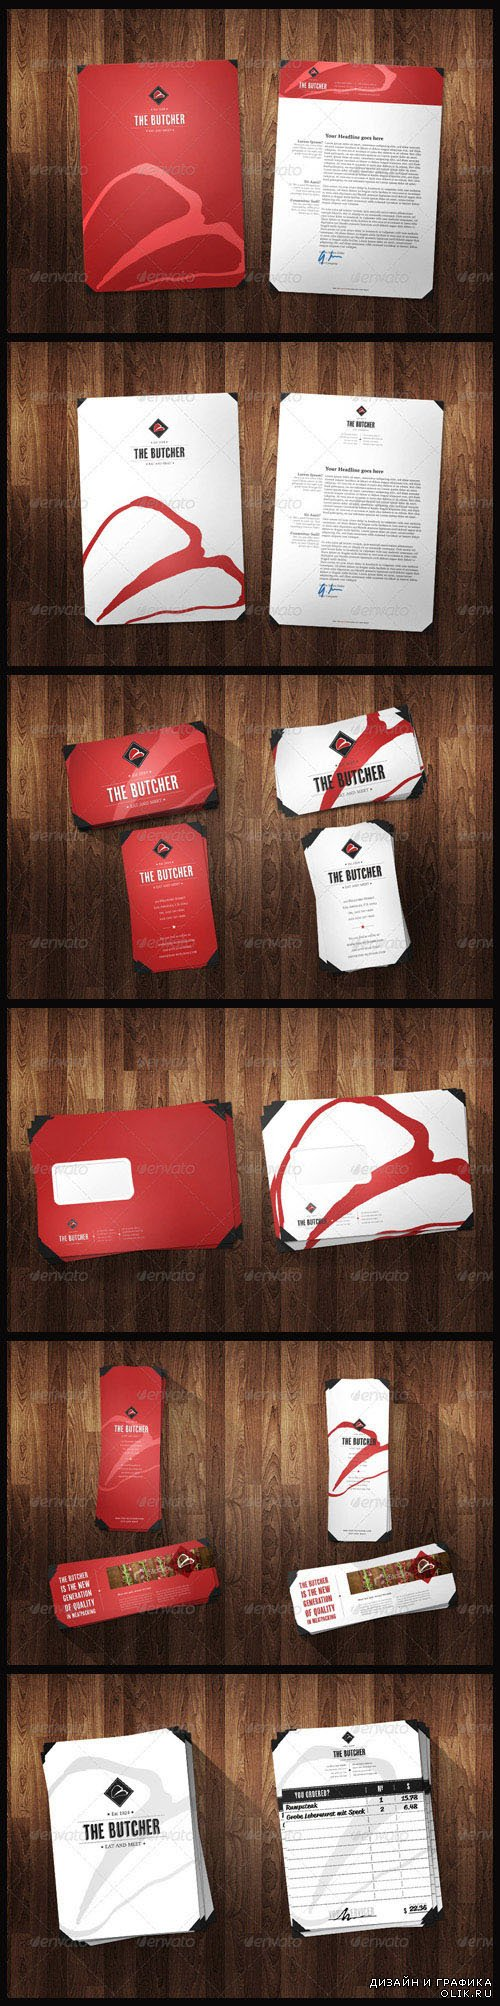 Corporate Identity Pack - Red & White Versions